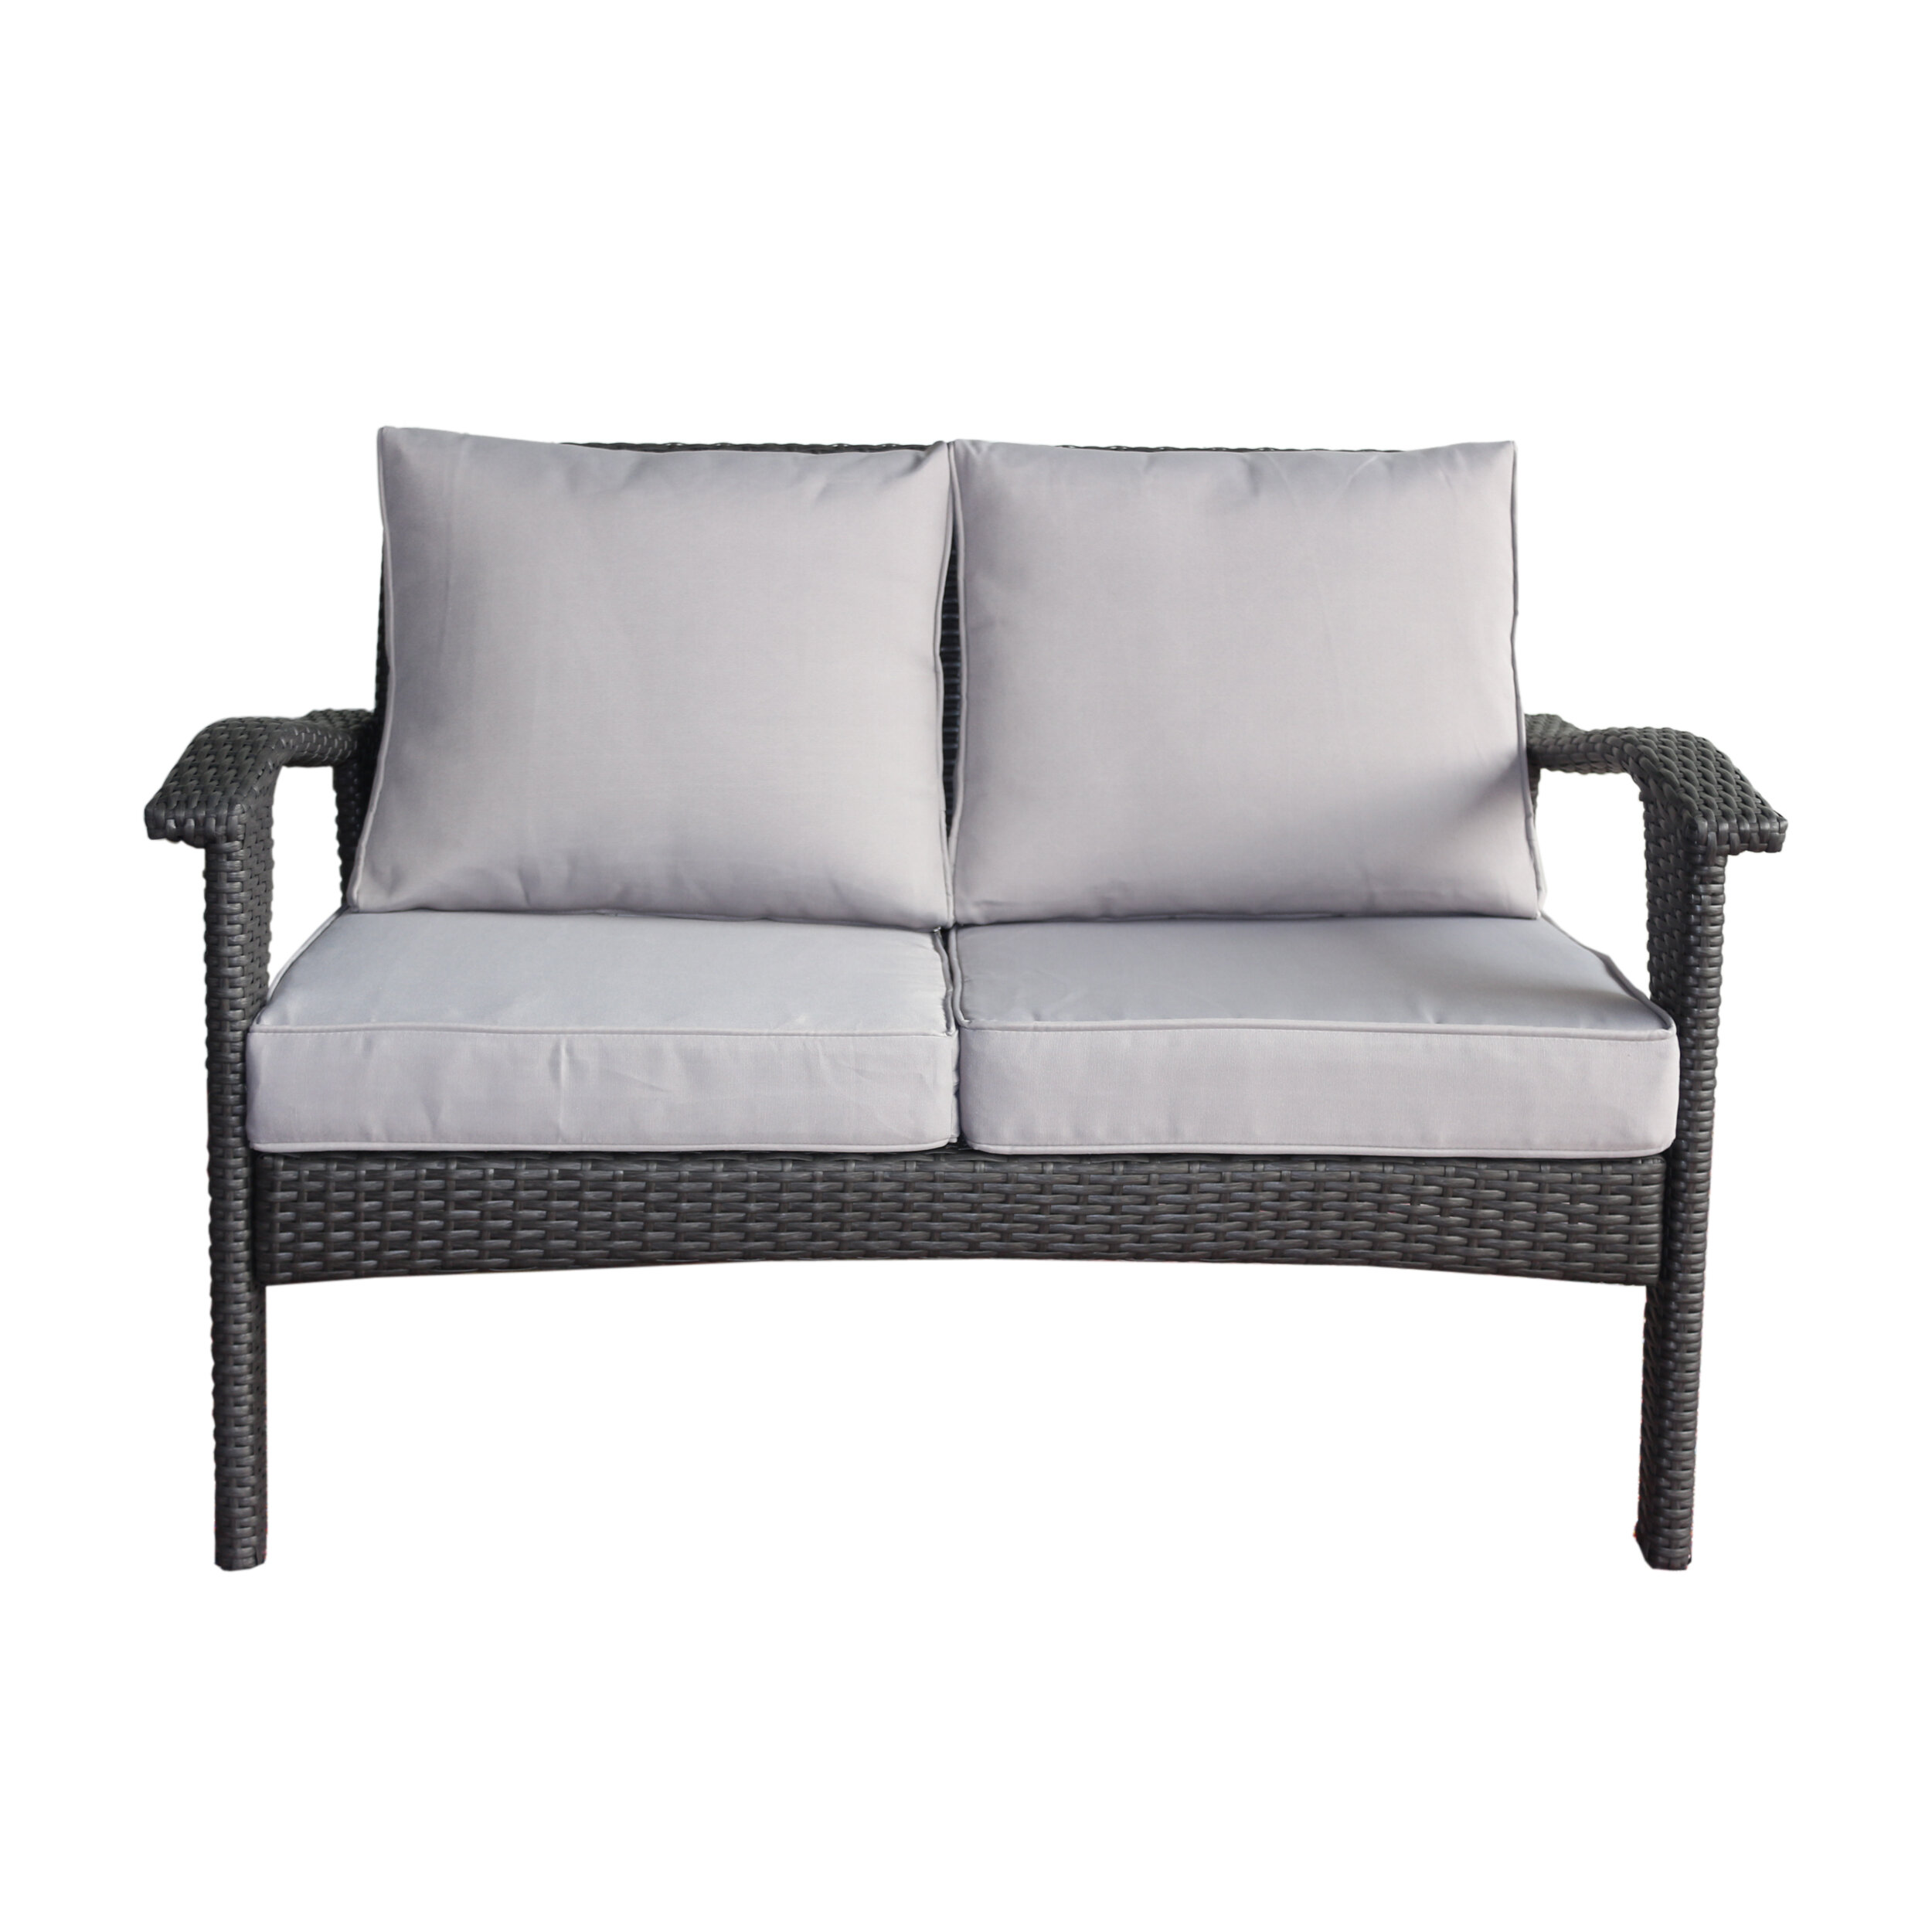 angle fog teak furniture loveseat warehouse outdoor usso patio